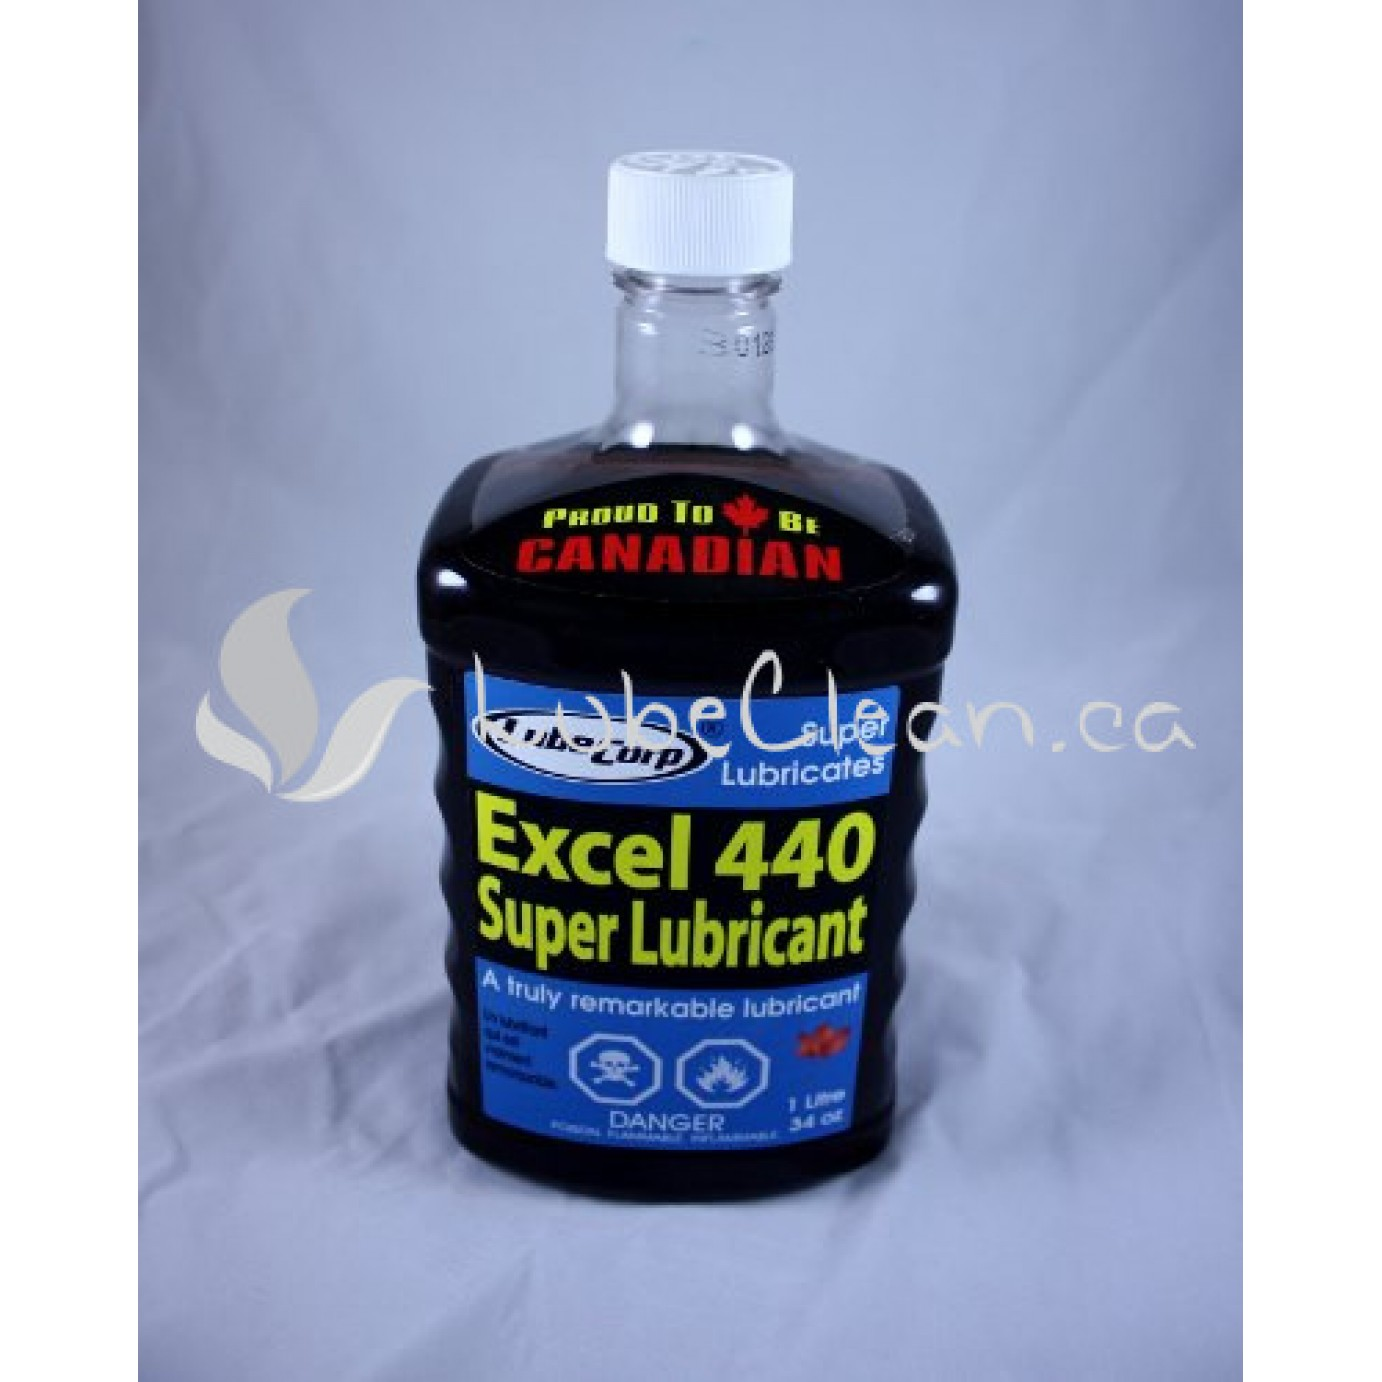 Excel 440 Super Lubricant 1 L bottle